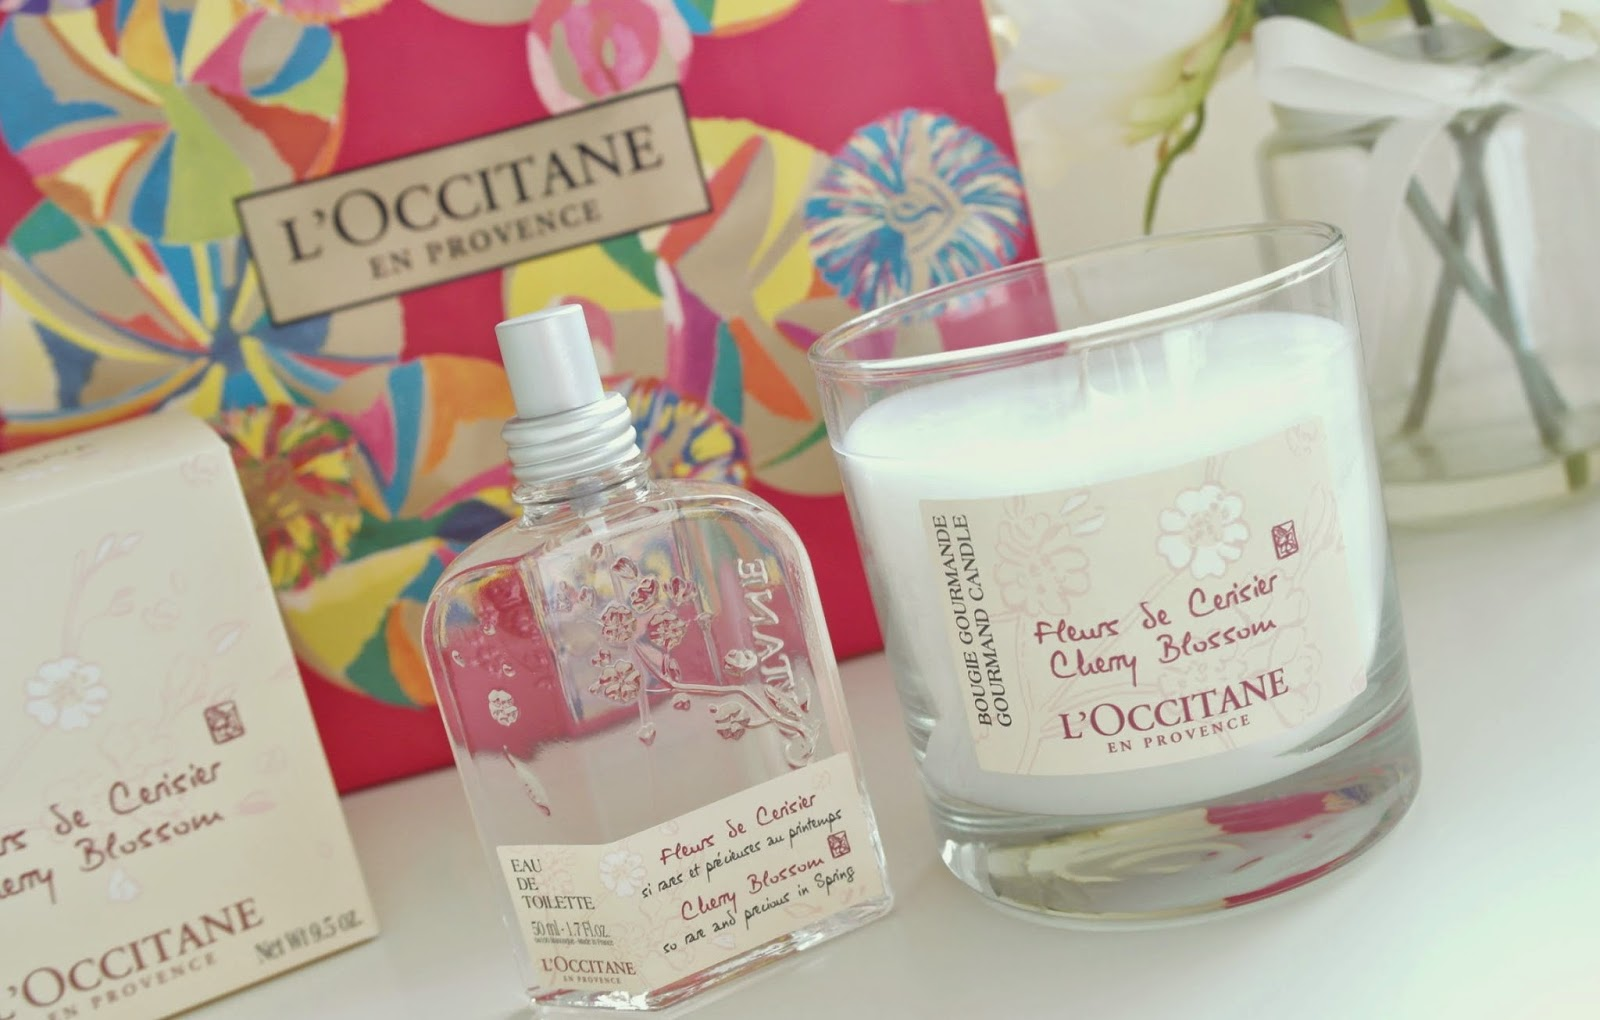 L'occitane at bicester village